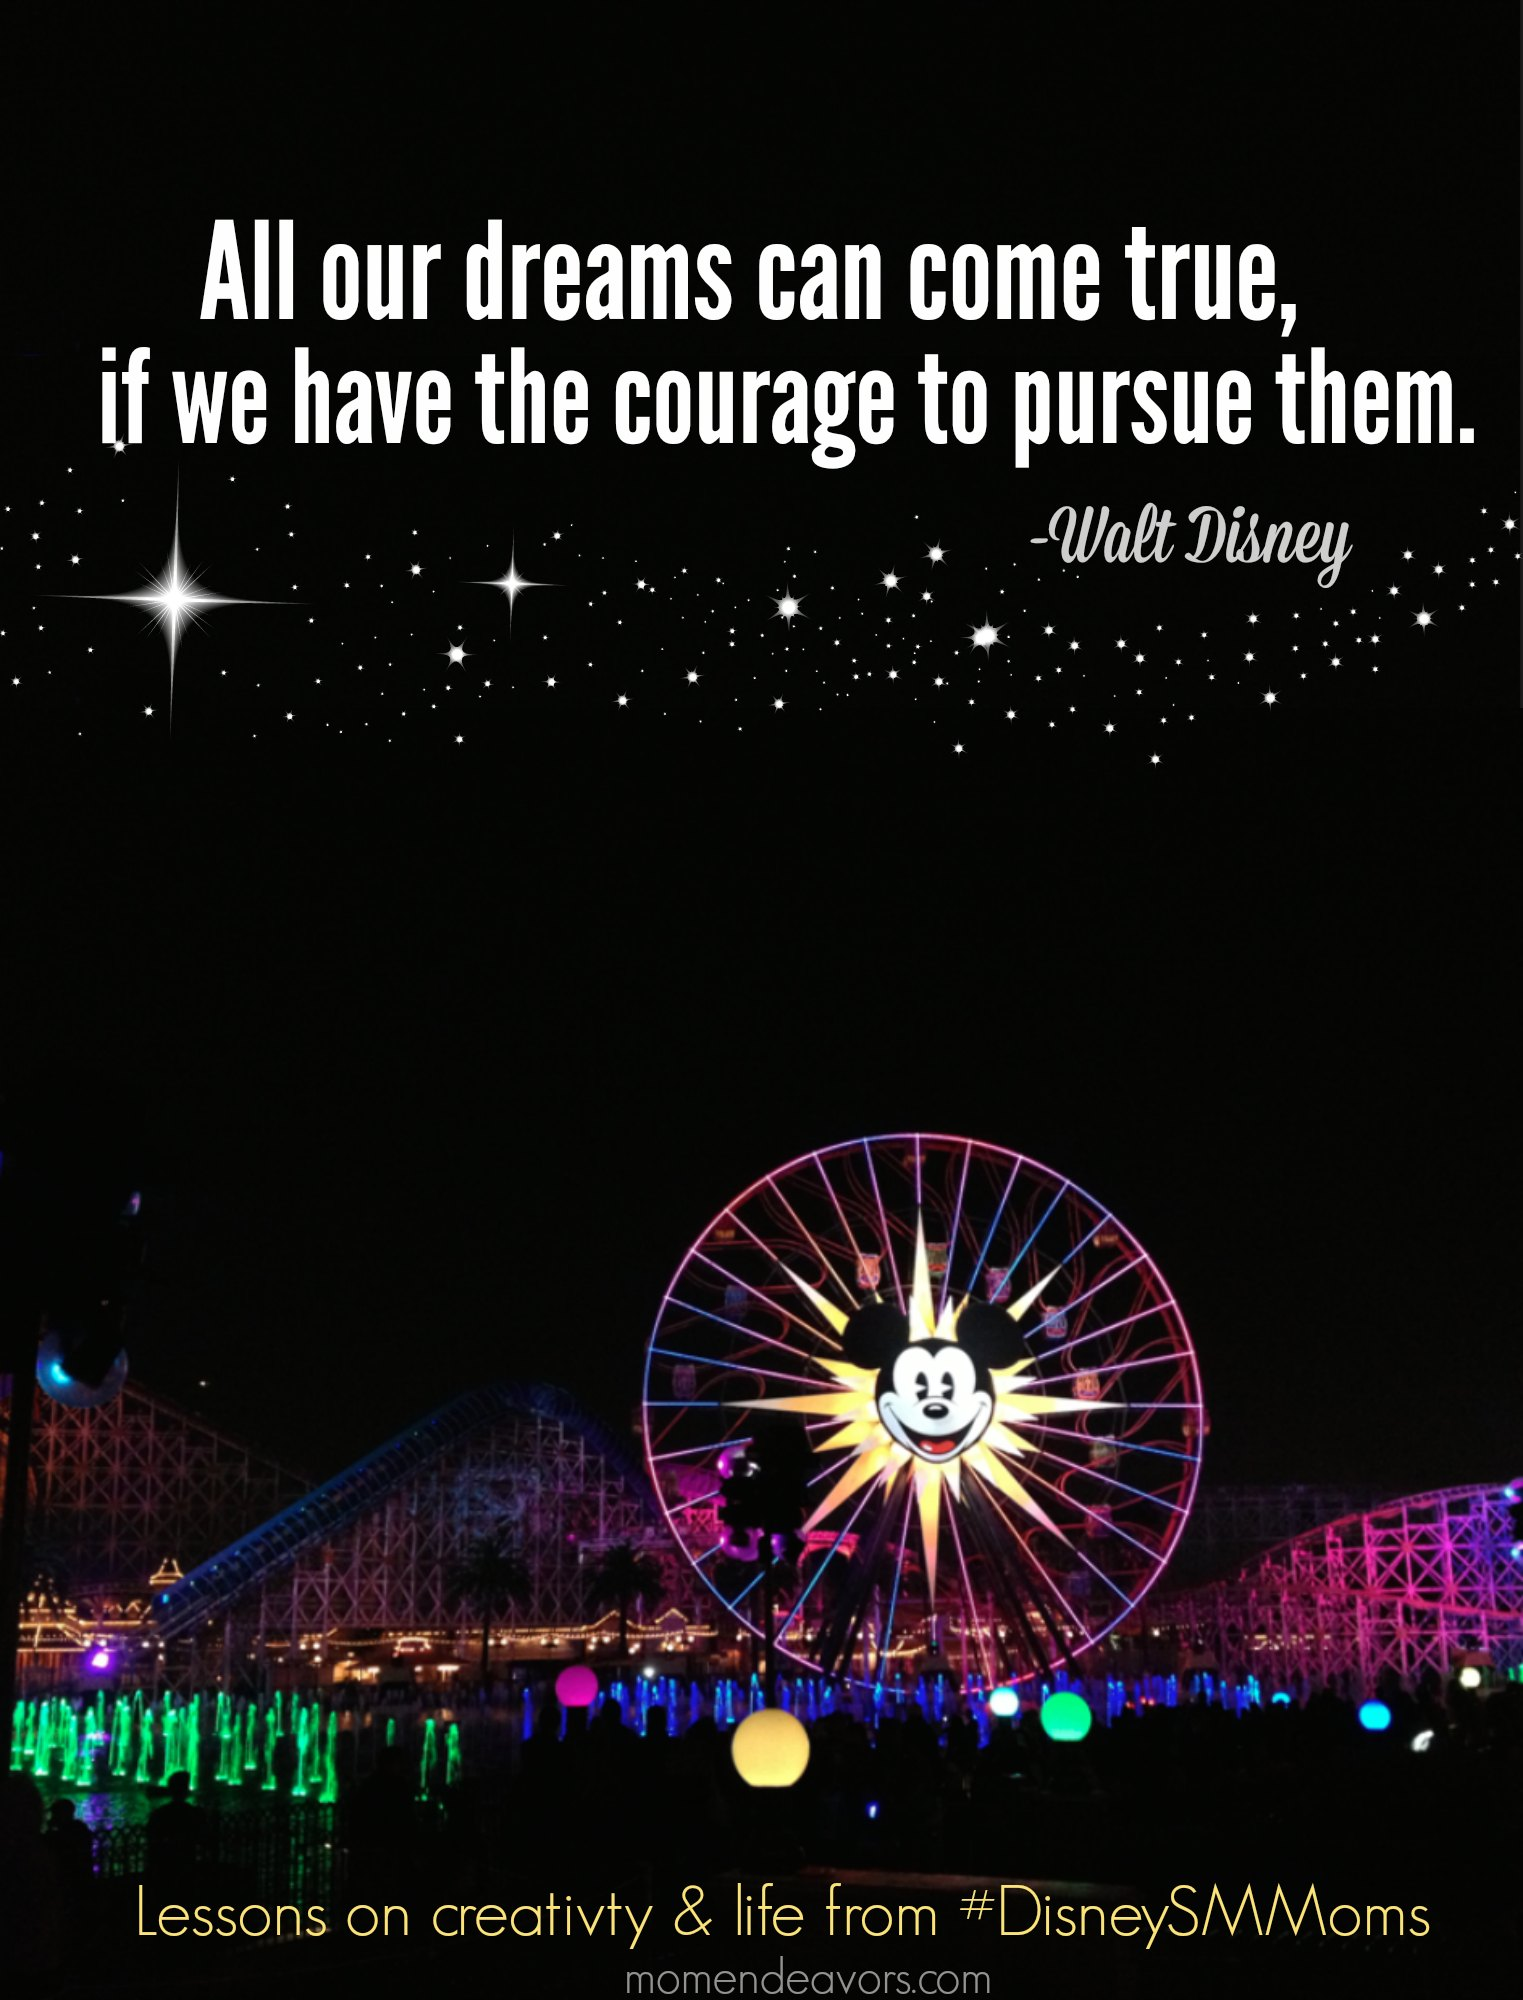 Walt Disney Quote & Lessons #DisneySMMoms